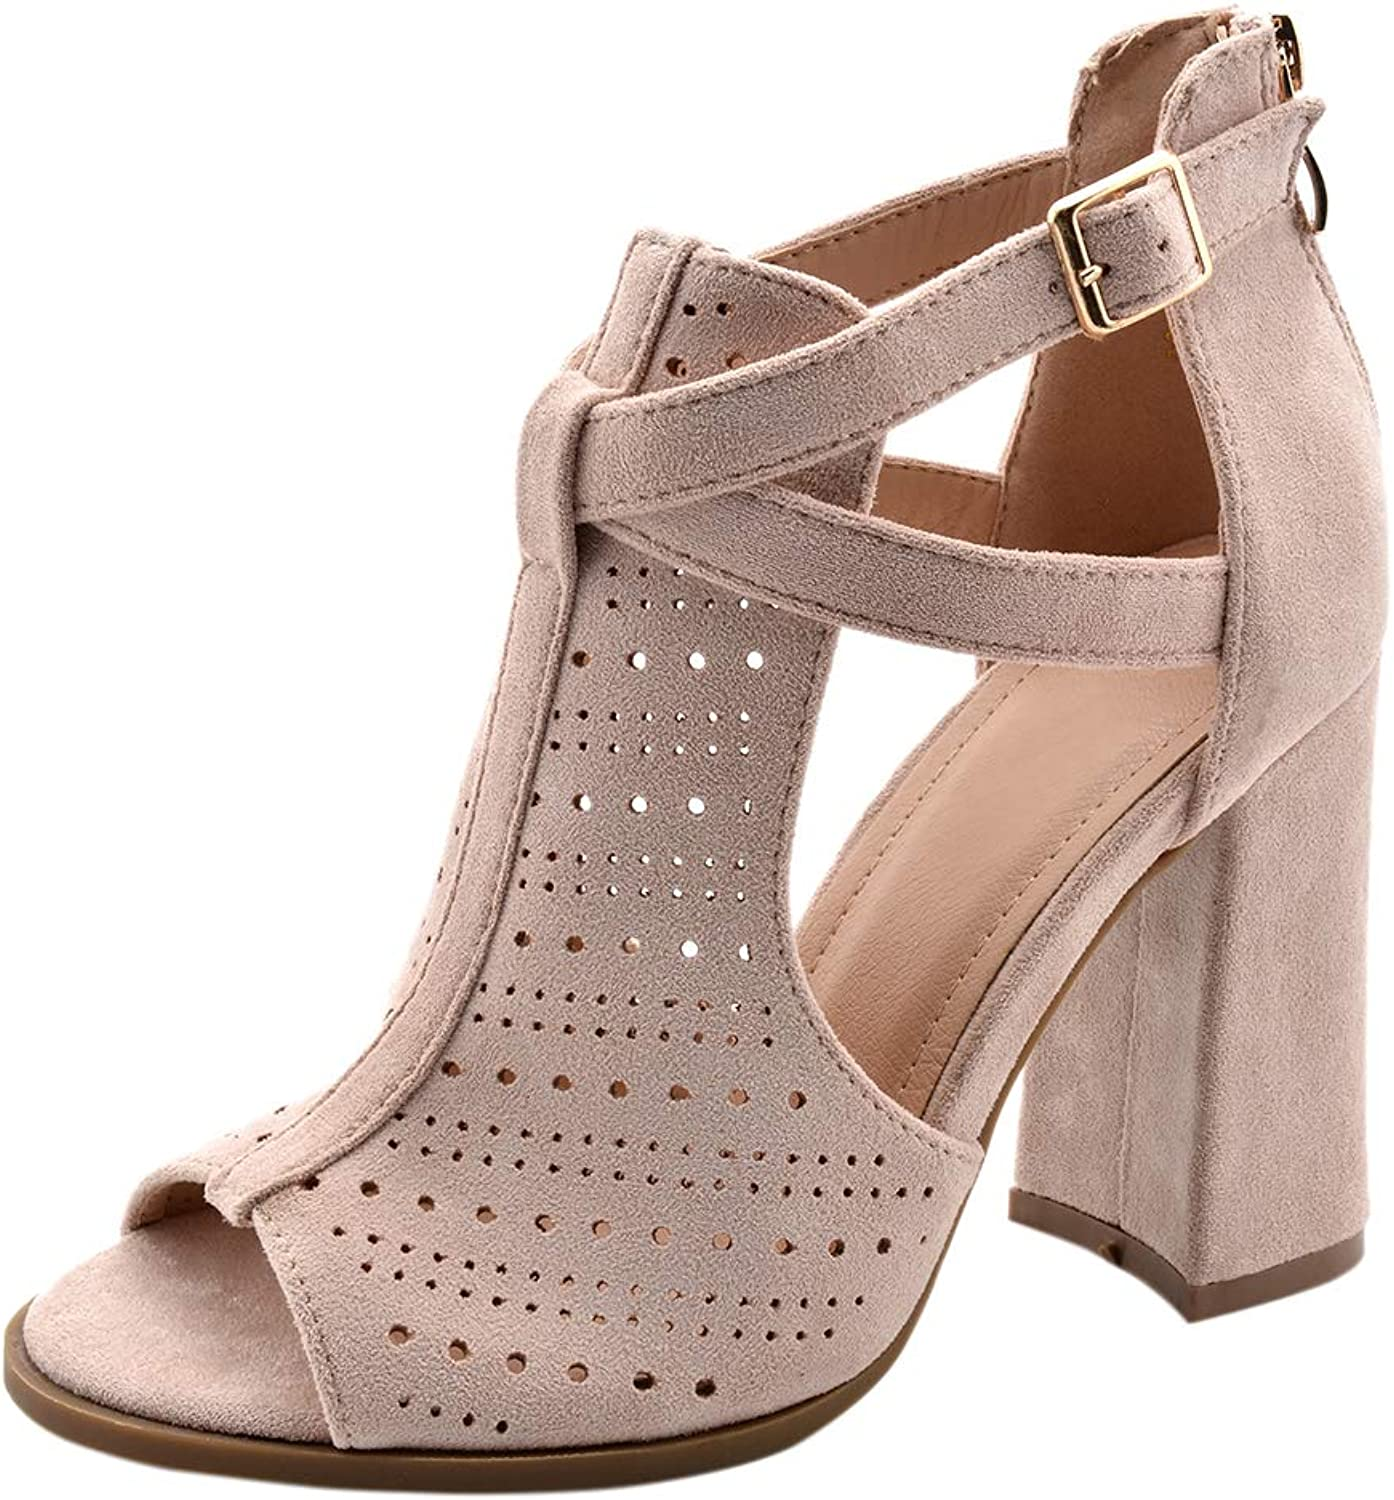 BIGTREE Womens Peep-Toe Chunky-Heeled Cut-Out Ankle-Booties with Buckle-Strap